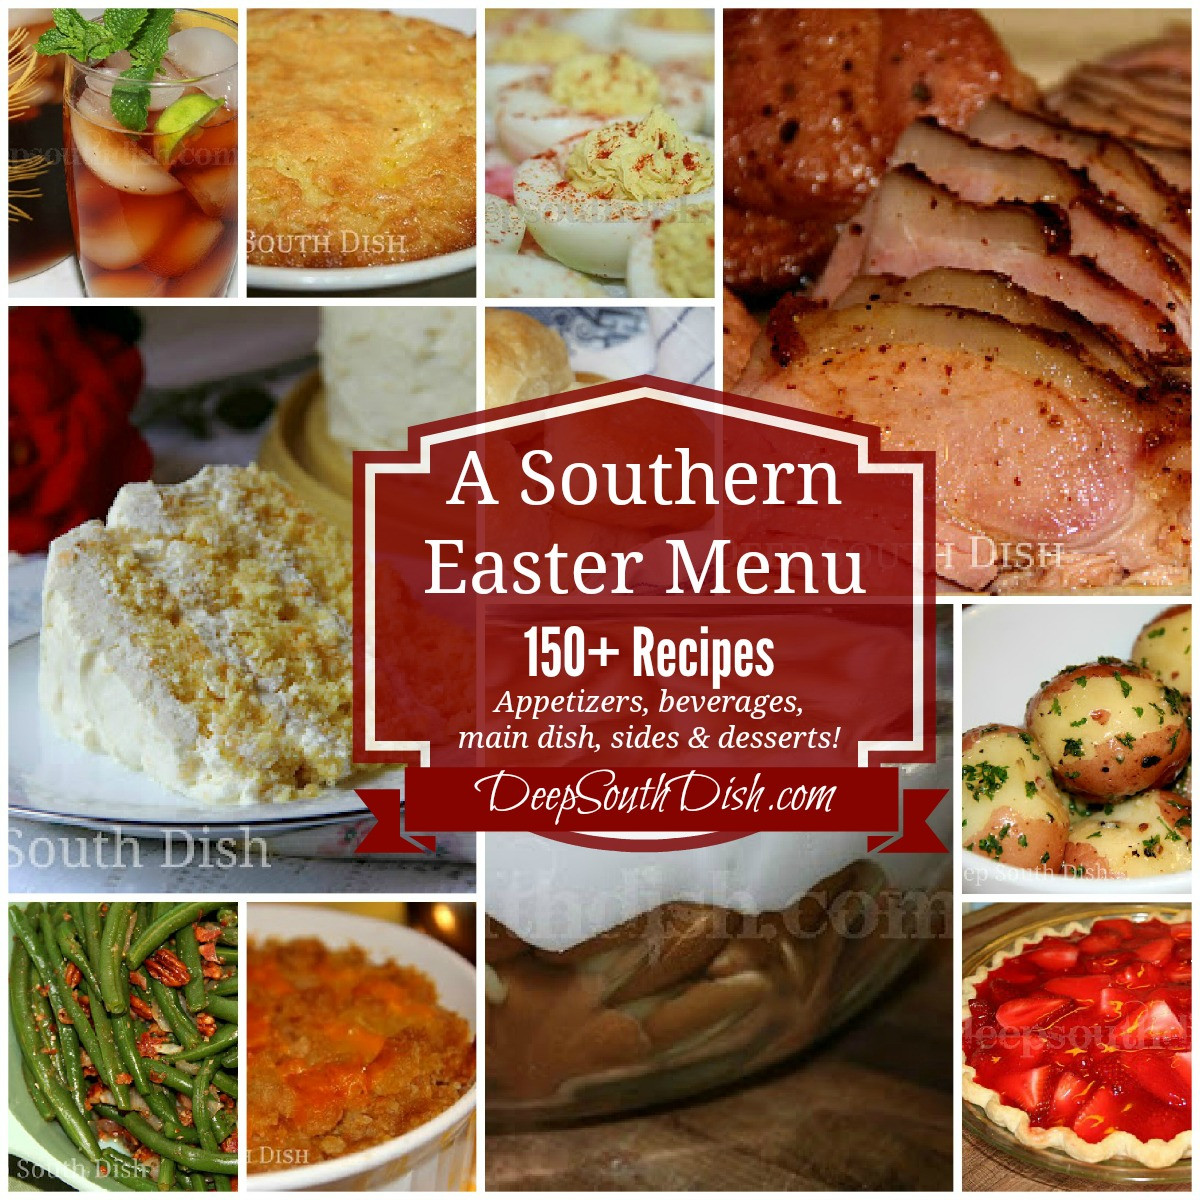 Dinner Ideas For Easter Sunday  Deep South Dish Southern Easter Menu Ideas and Recipes